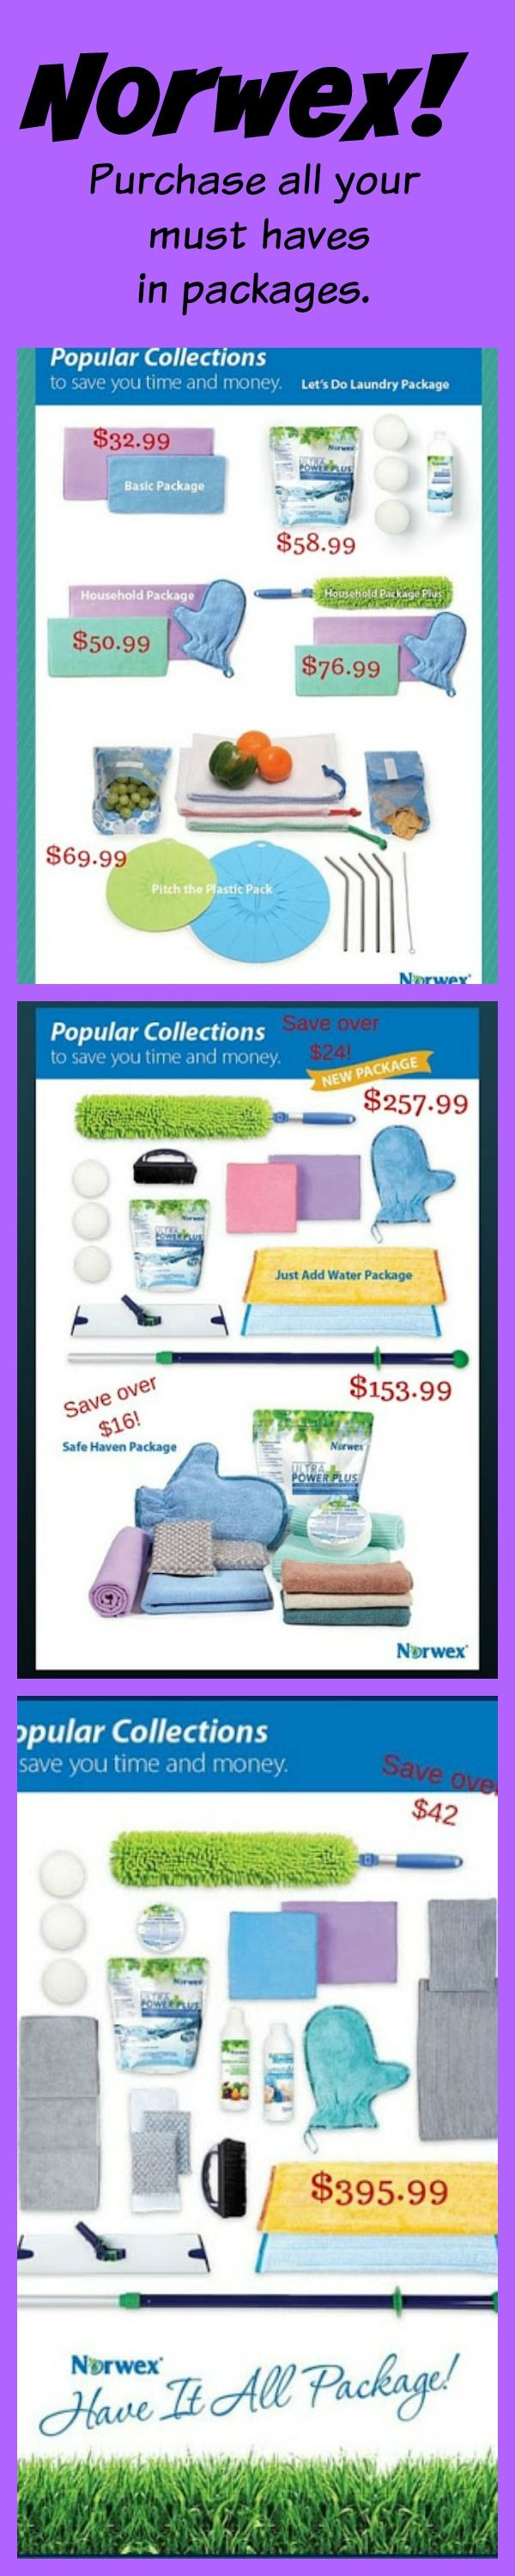 Receive all your Norwex must haves in packages to make cleaning easy and safe!   Click on image to see my full Norwex Virtual Catalog.